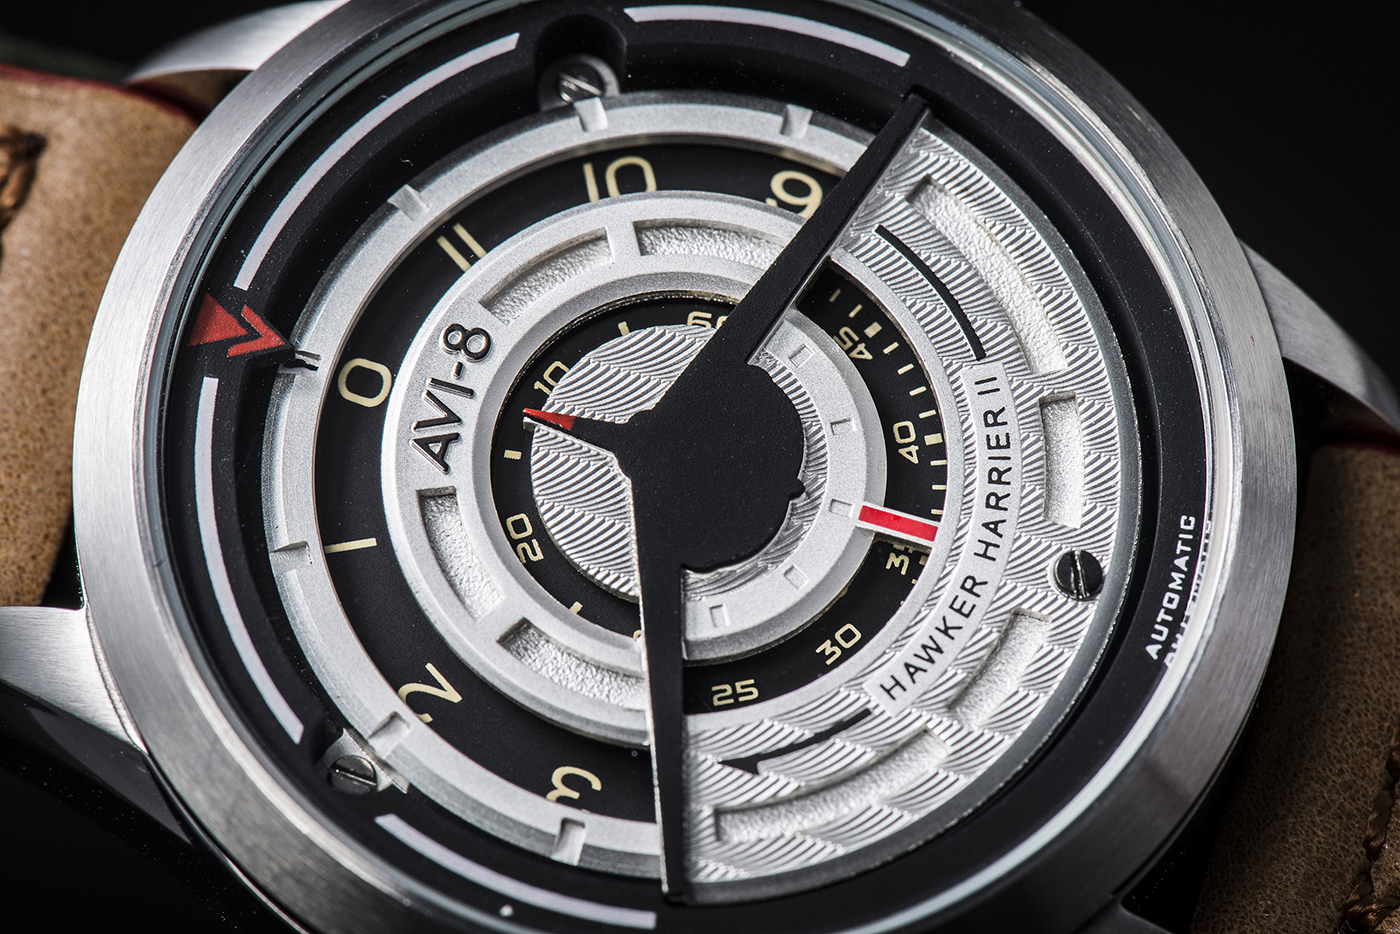 A close-up view of the watch dial clearly shows the Harrier silhouette in black on the front, and how it subtly indicates the time with the rotating discs displaying the hour, minute and second.